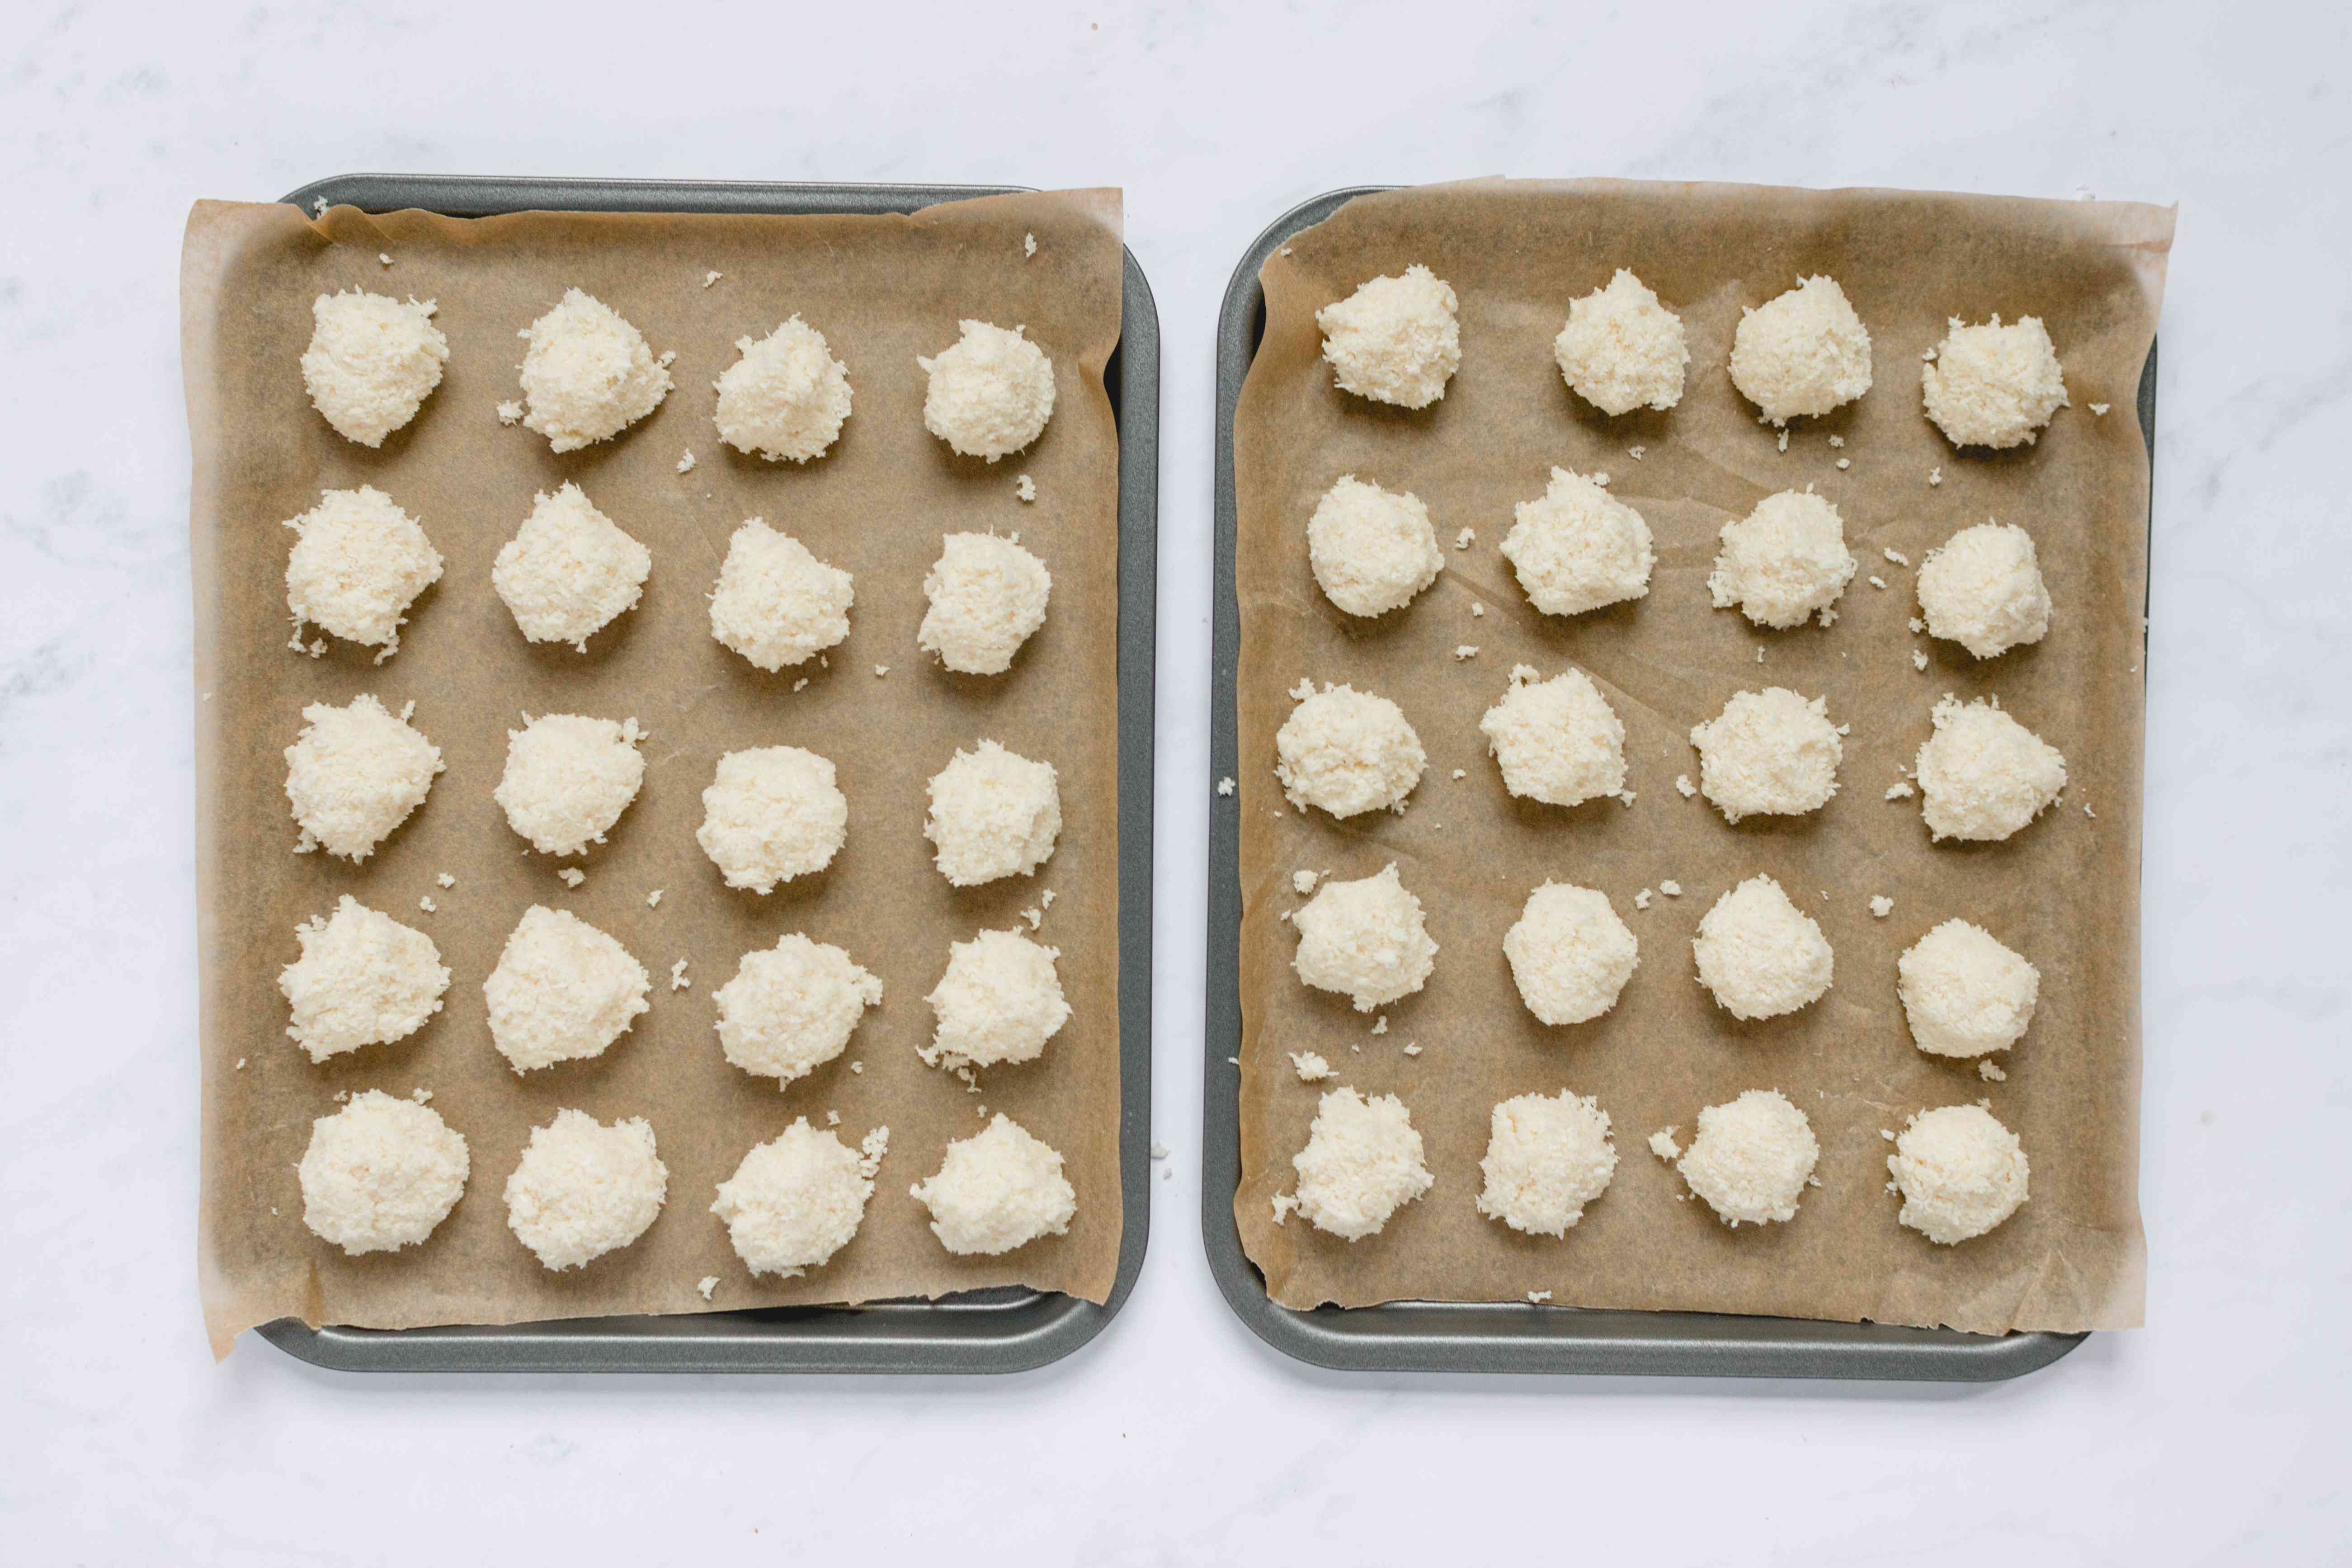 mounds of coconut macaron mixture on baking sheets ready for oven